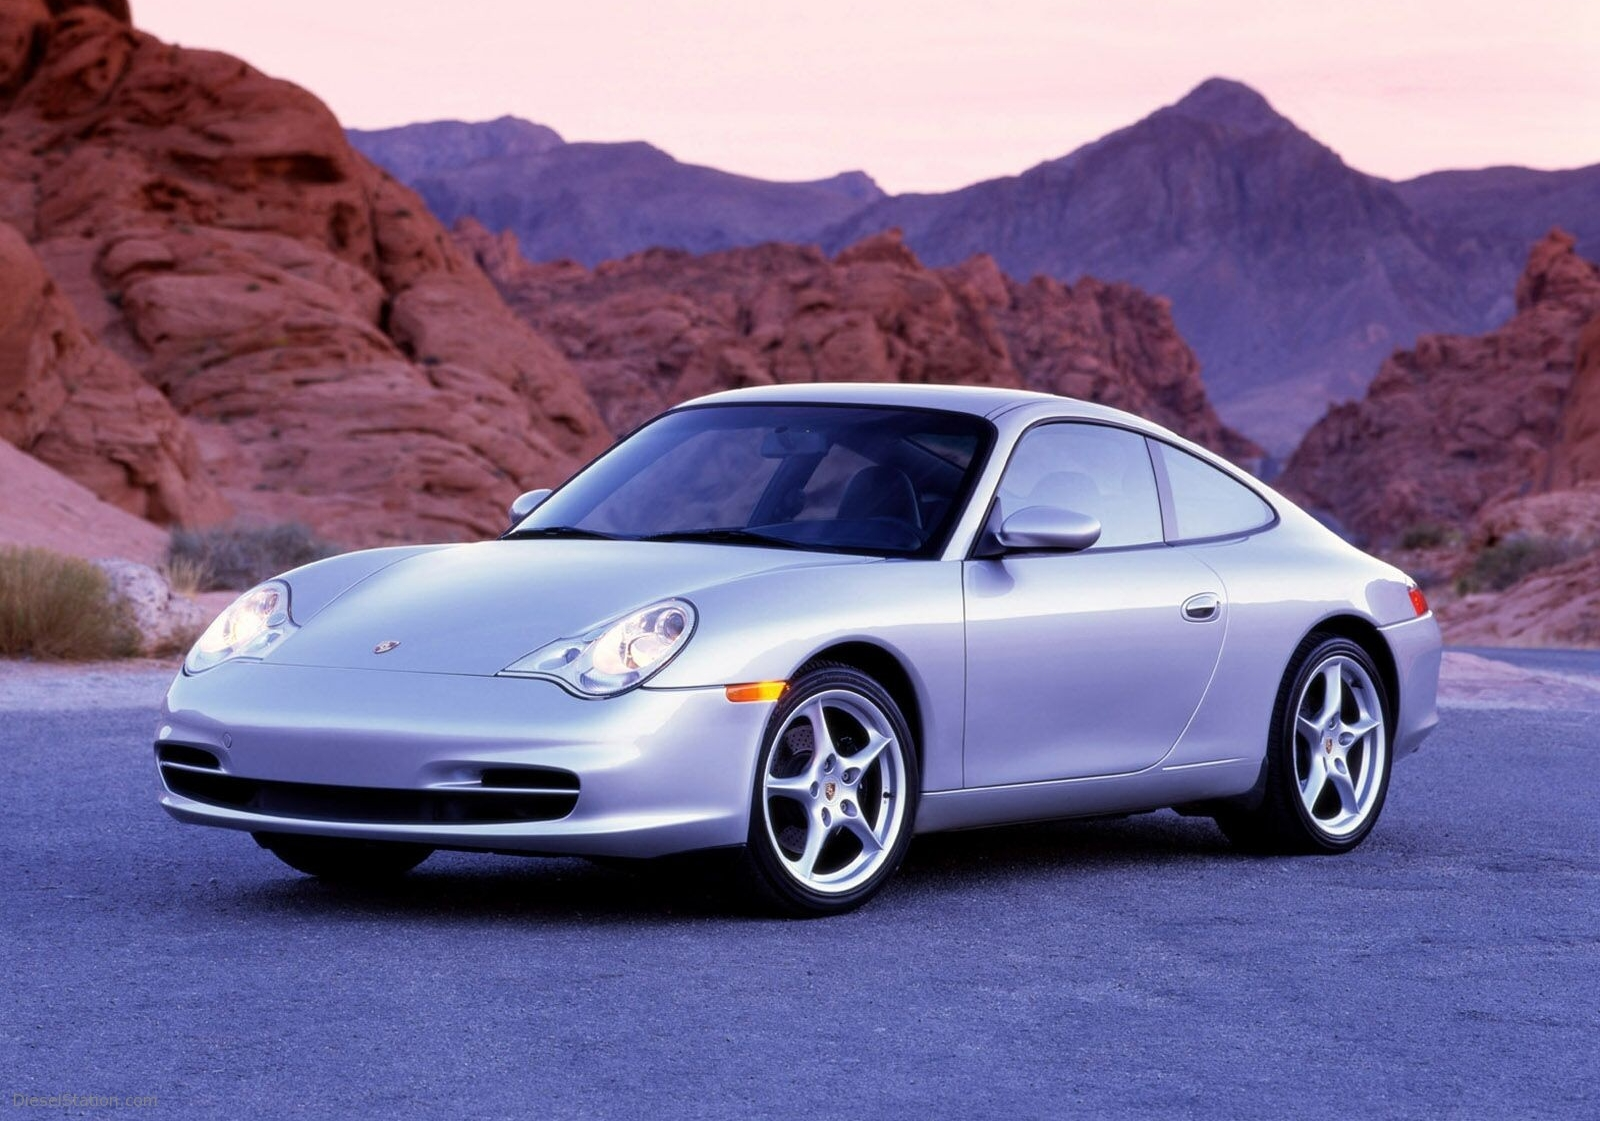 The revamped 911 996